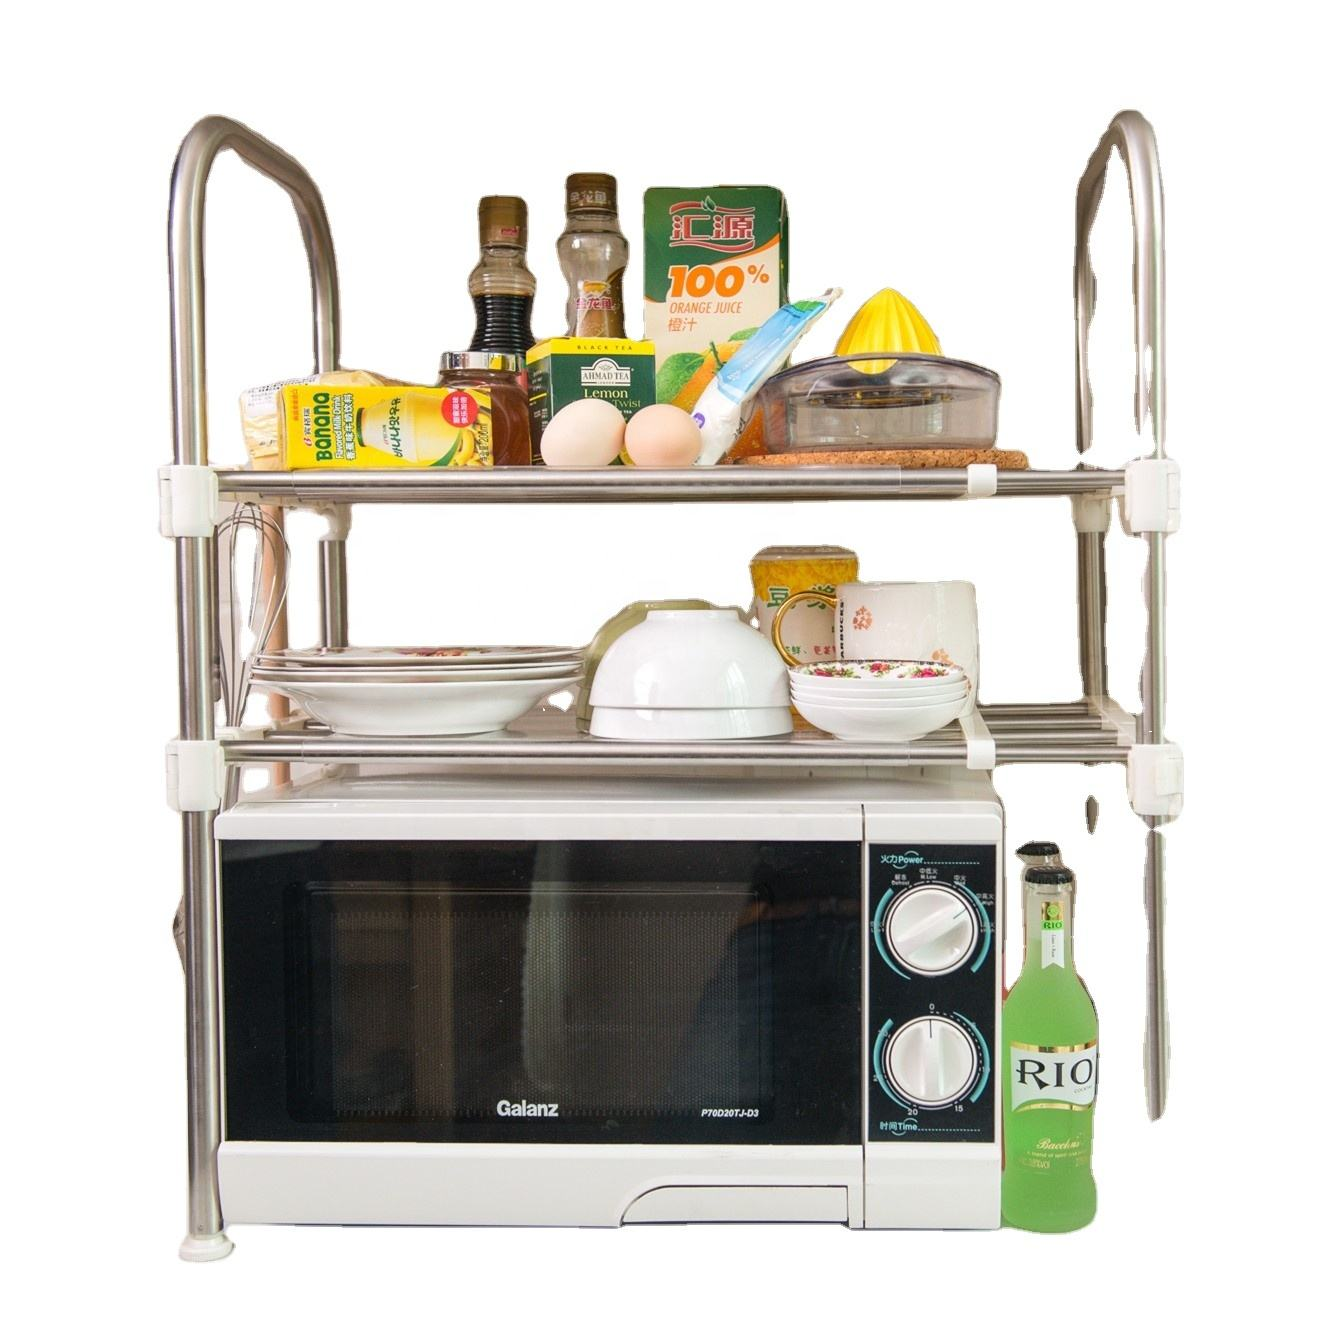 Metal Household Kitchen Stainless Steel Microwave Oven Rack Storage Holder